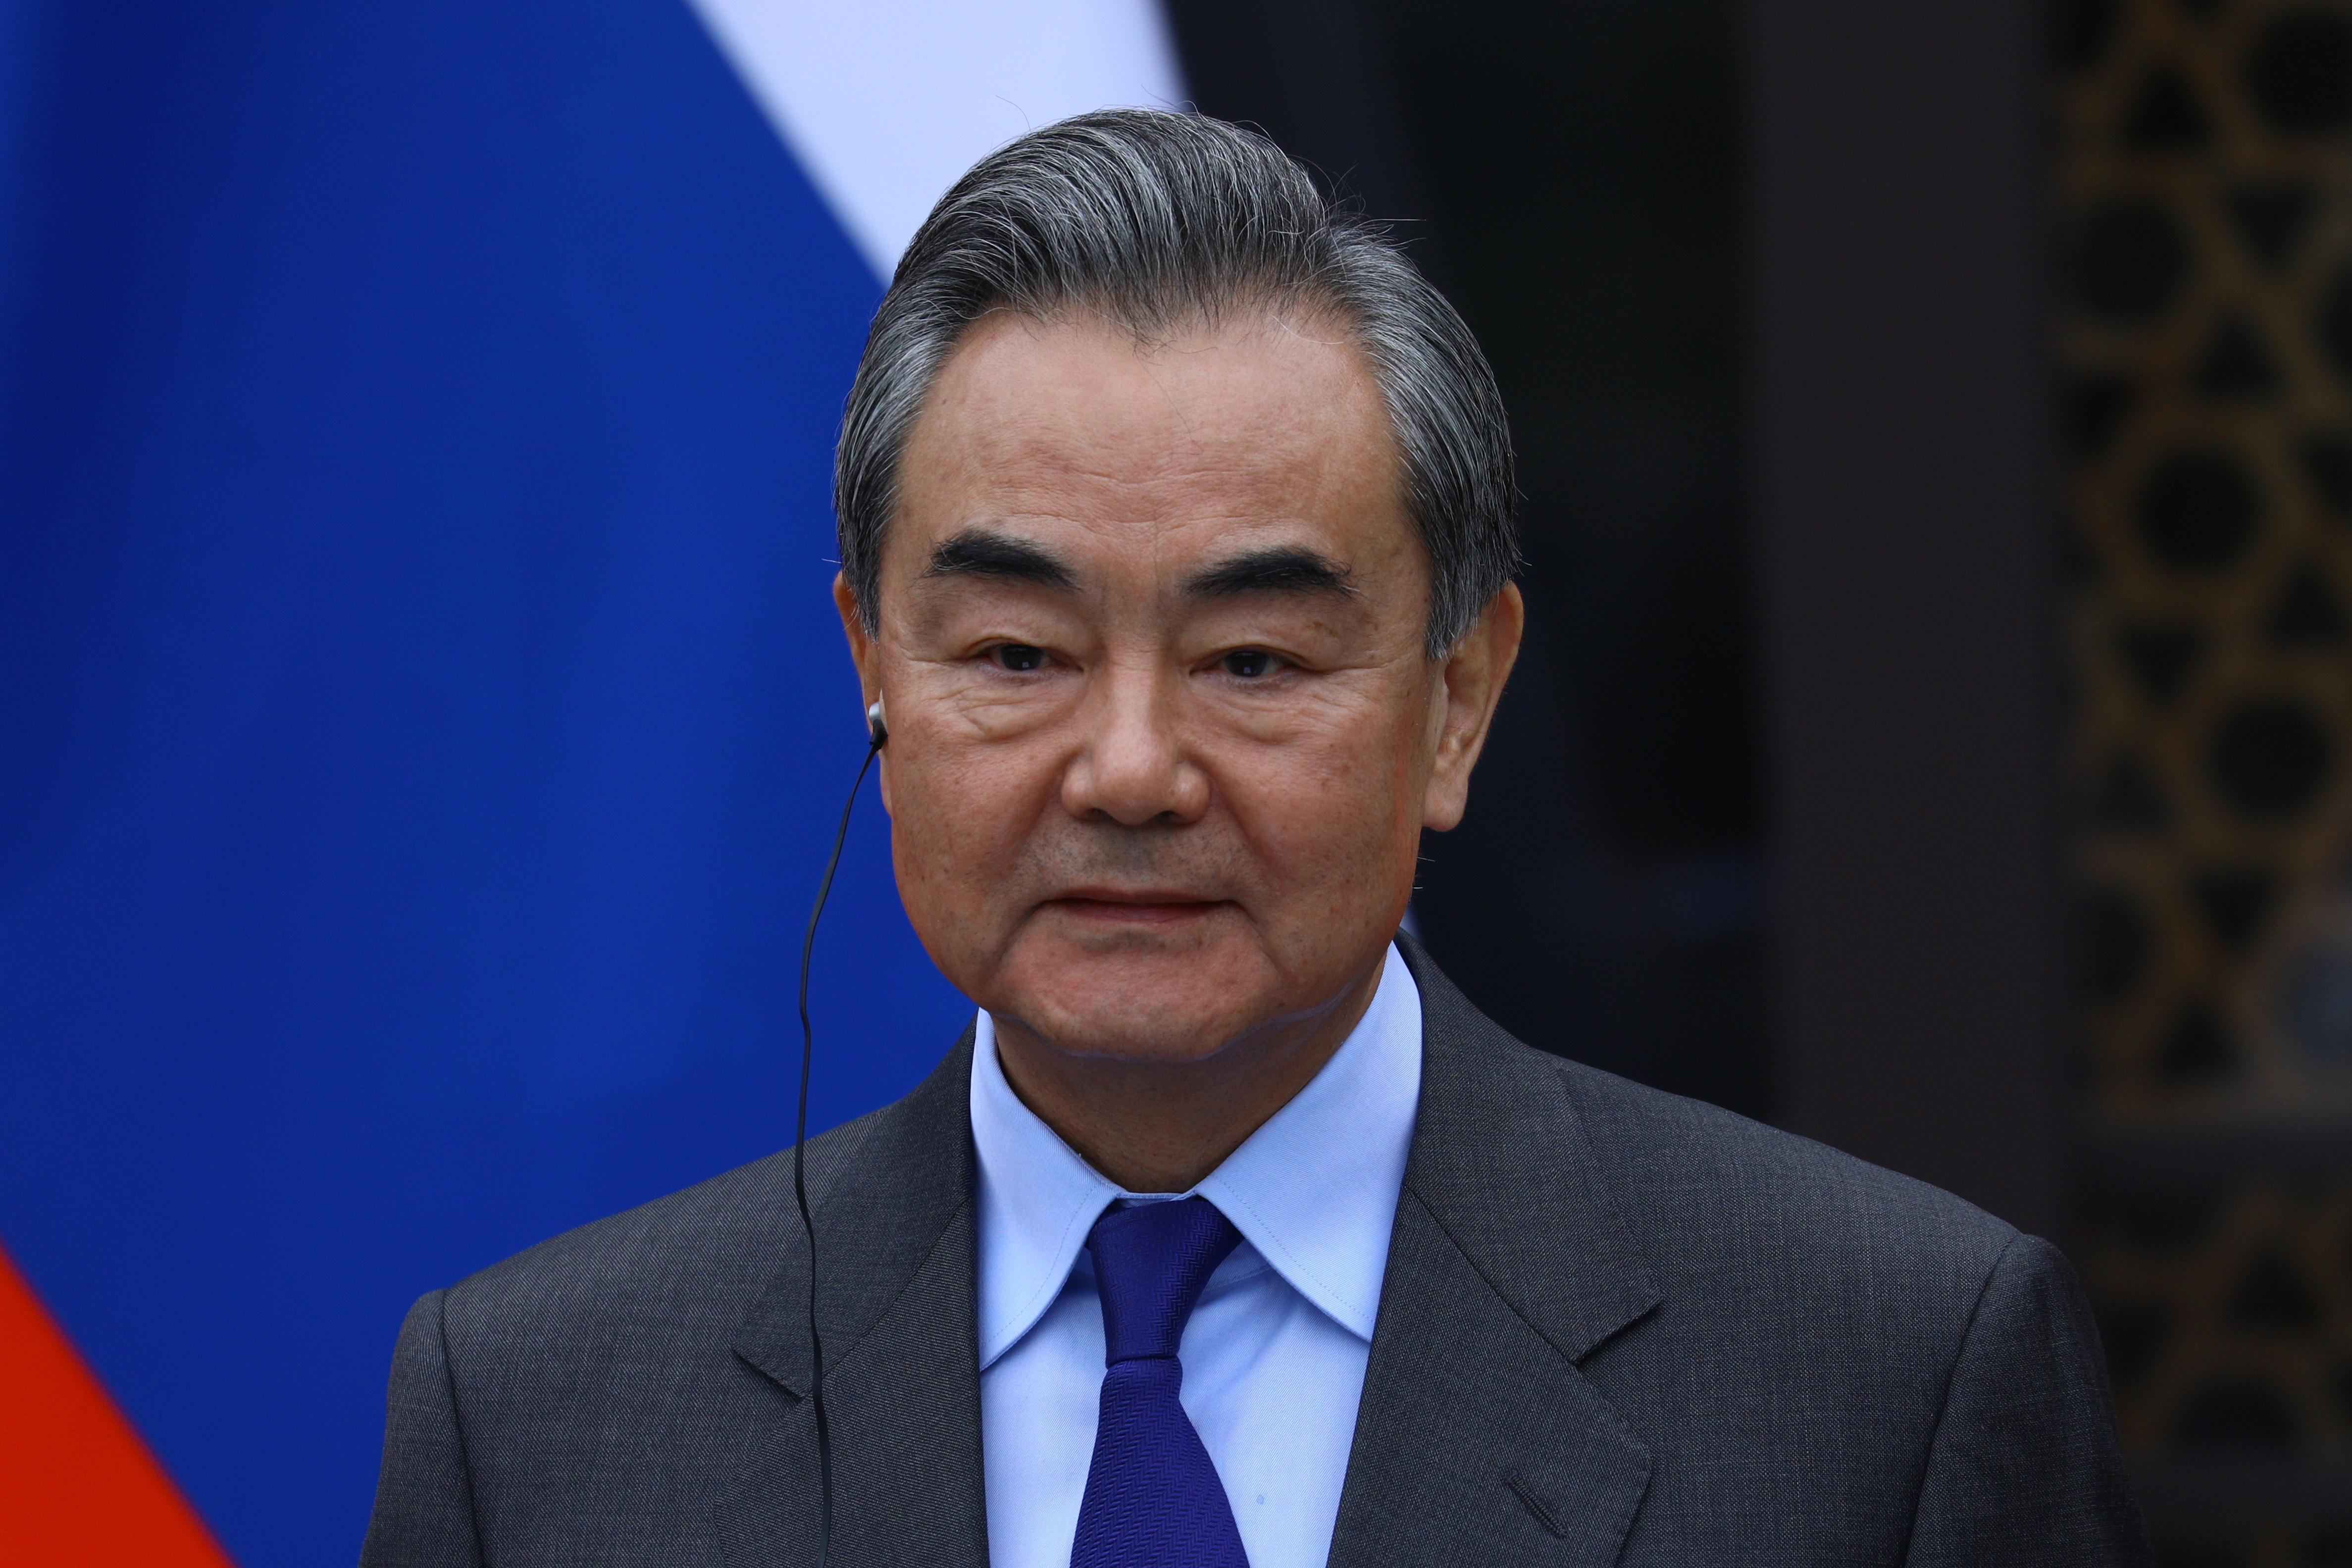 China's State Councilor and Foreign Minister Wang Yi attends a news conference following a meeting with Russia's Foreign Minister Sergei Lavrov in Guilin, China March 23, 2021. Russian Foreign Ministry/Handout via REUTERS